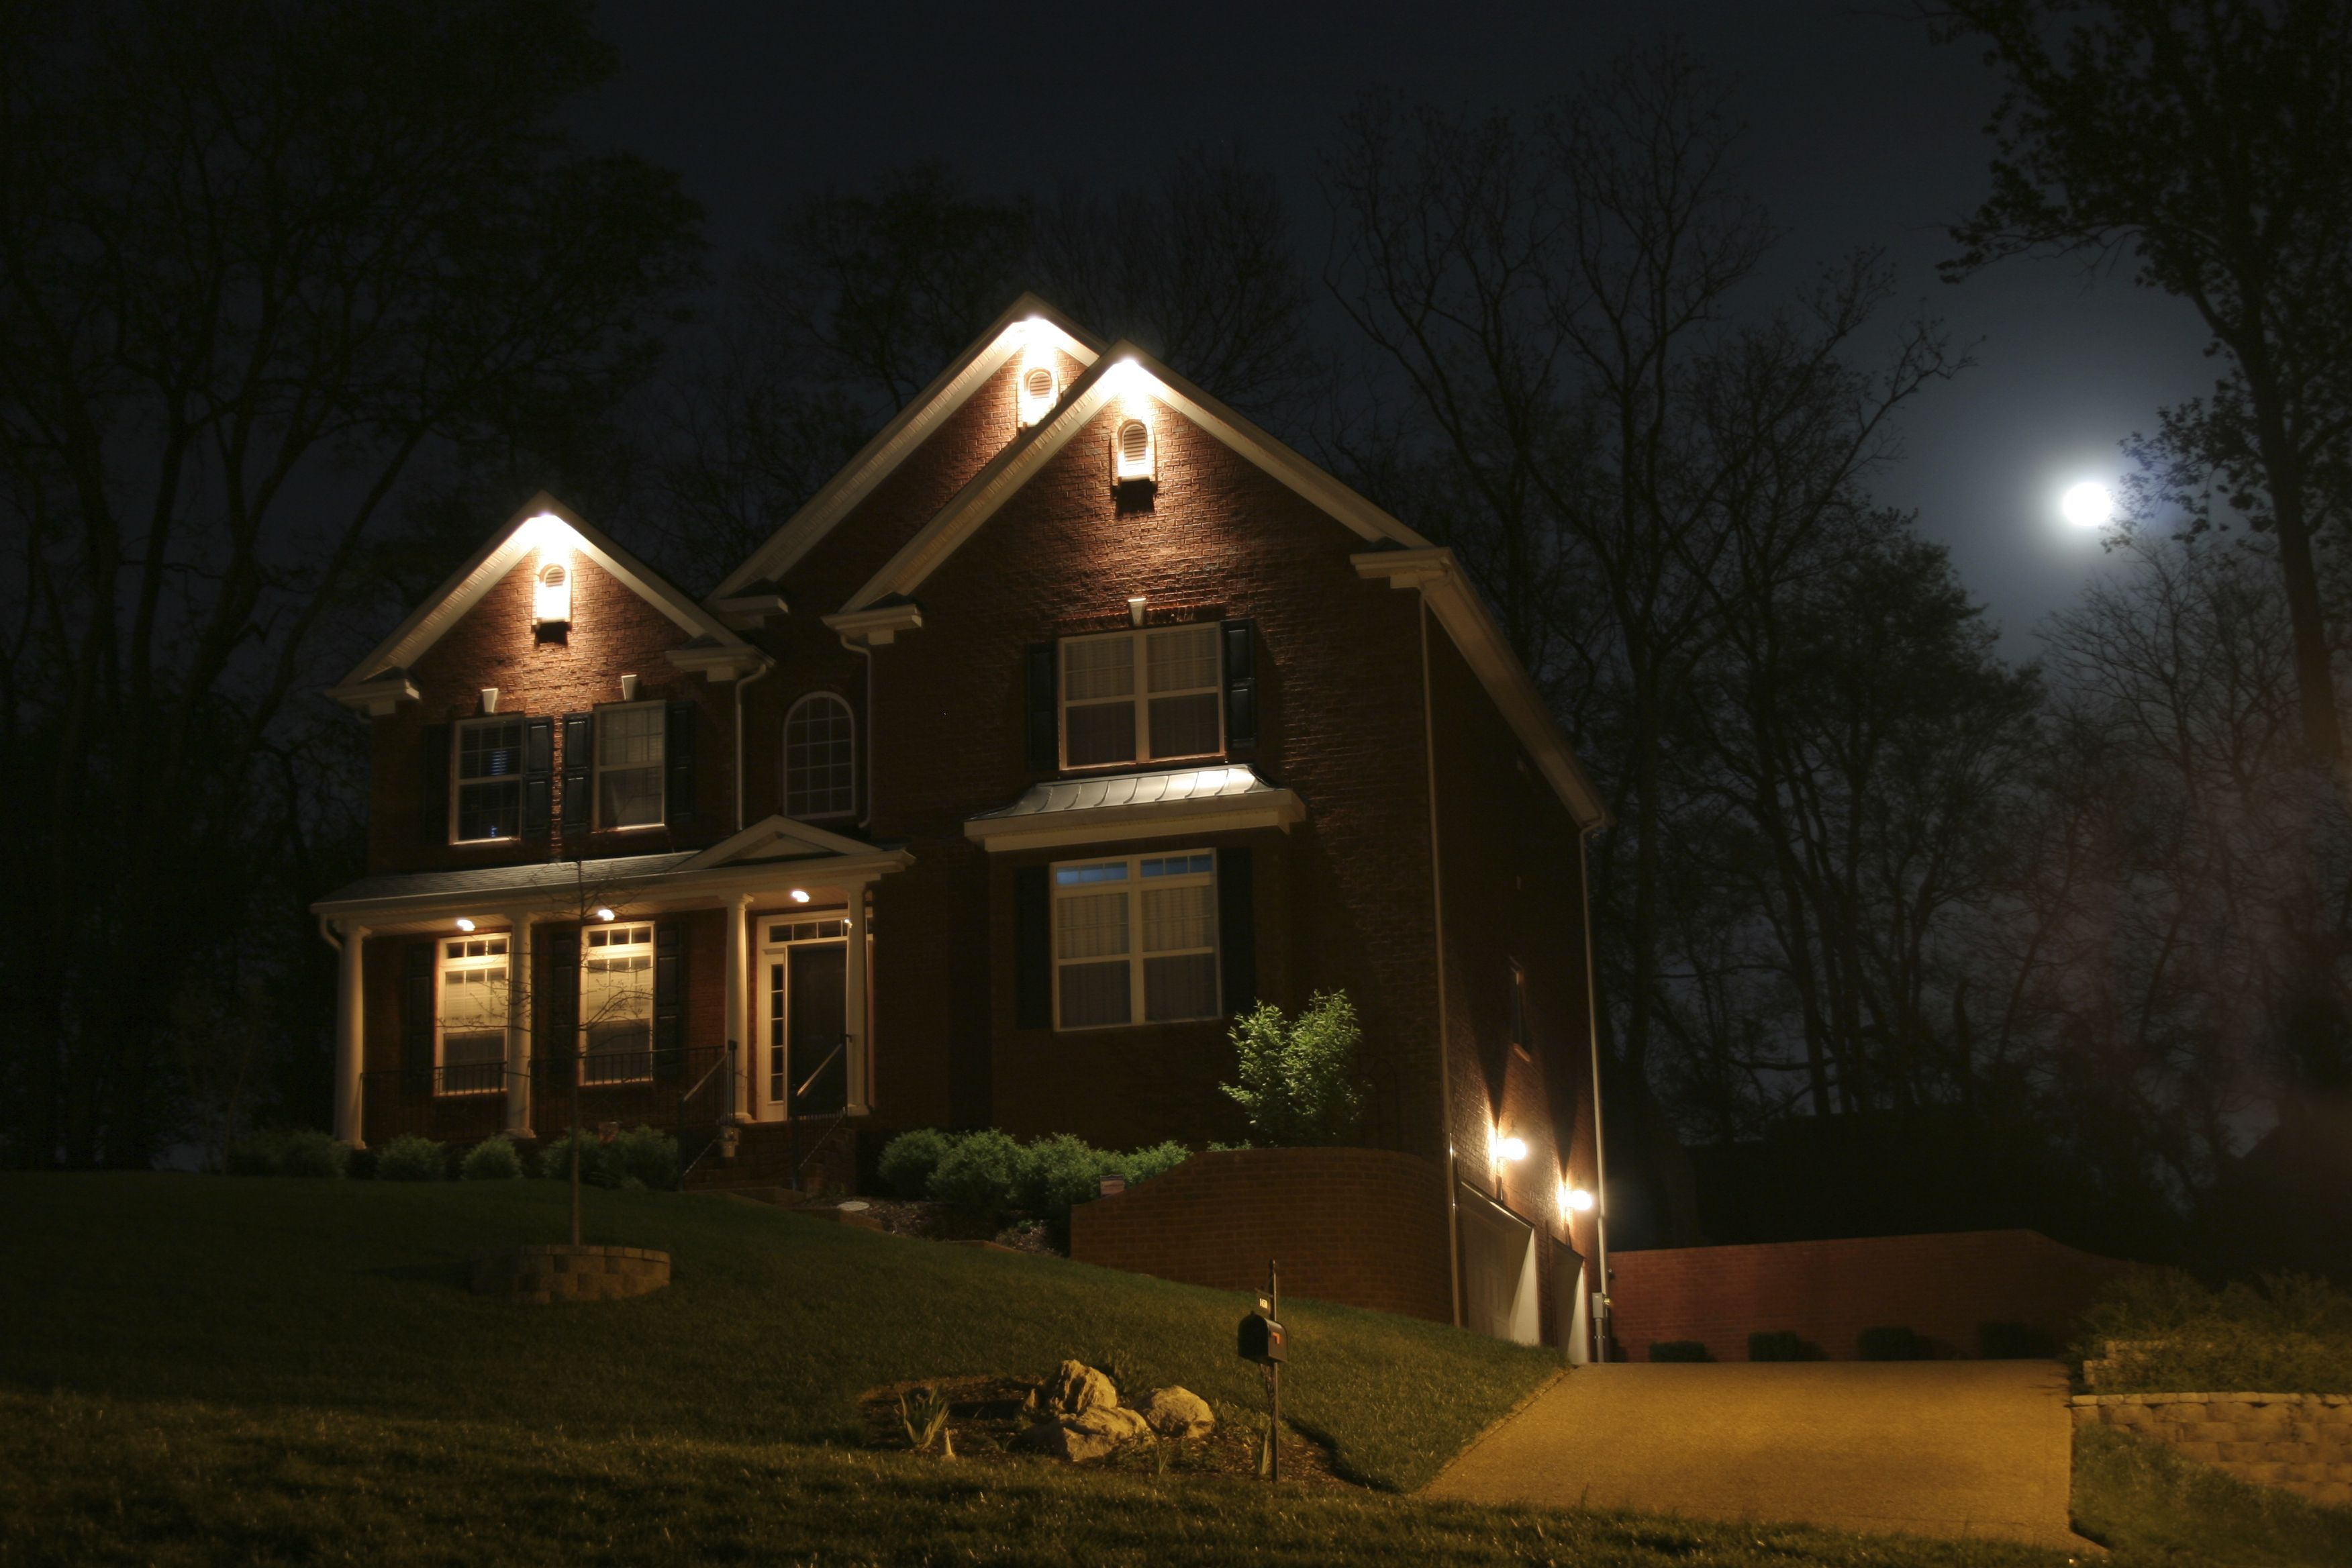 House and Lights